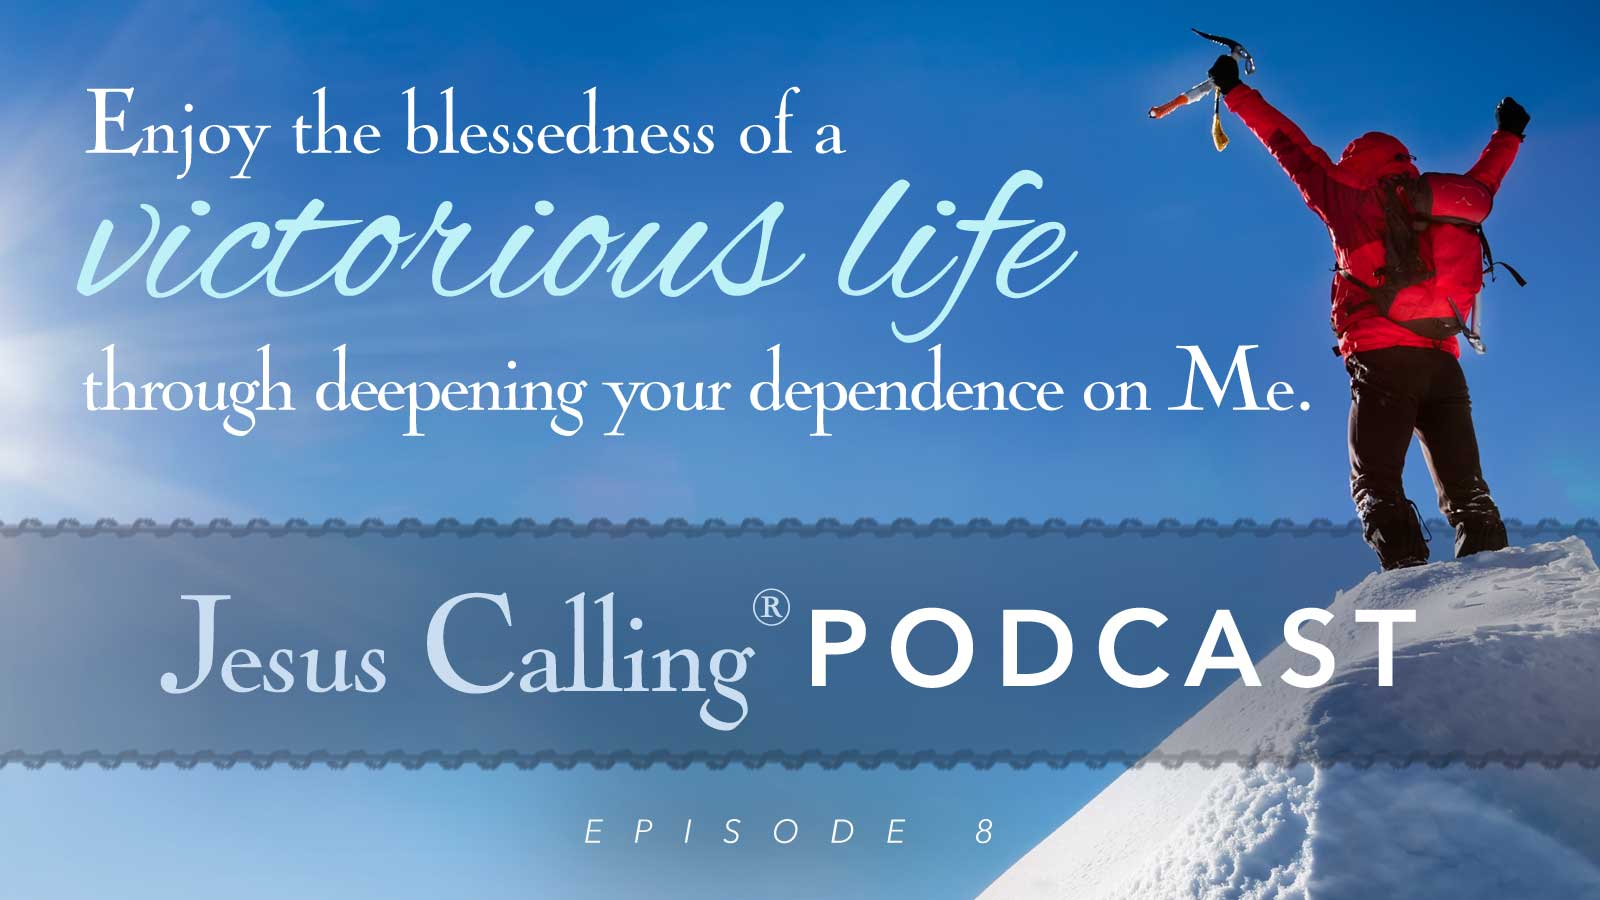 Jesus Calling Podcast Episode 8: Trusting Jesus through the power of prayer.